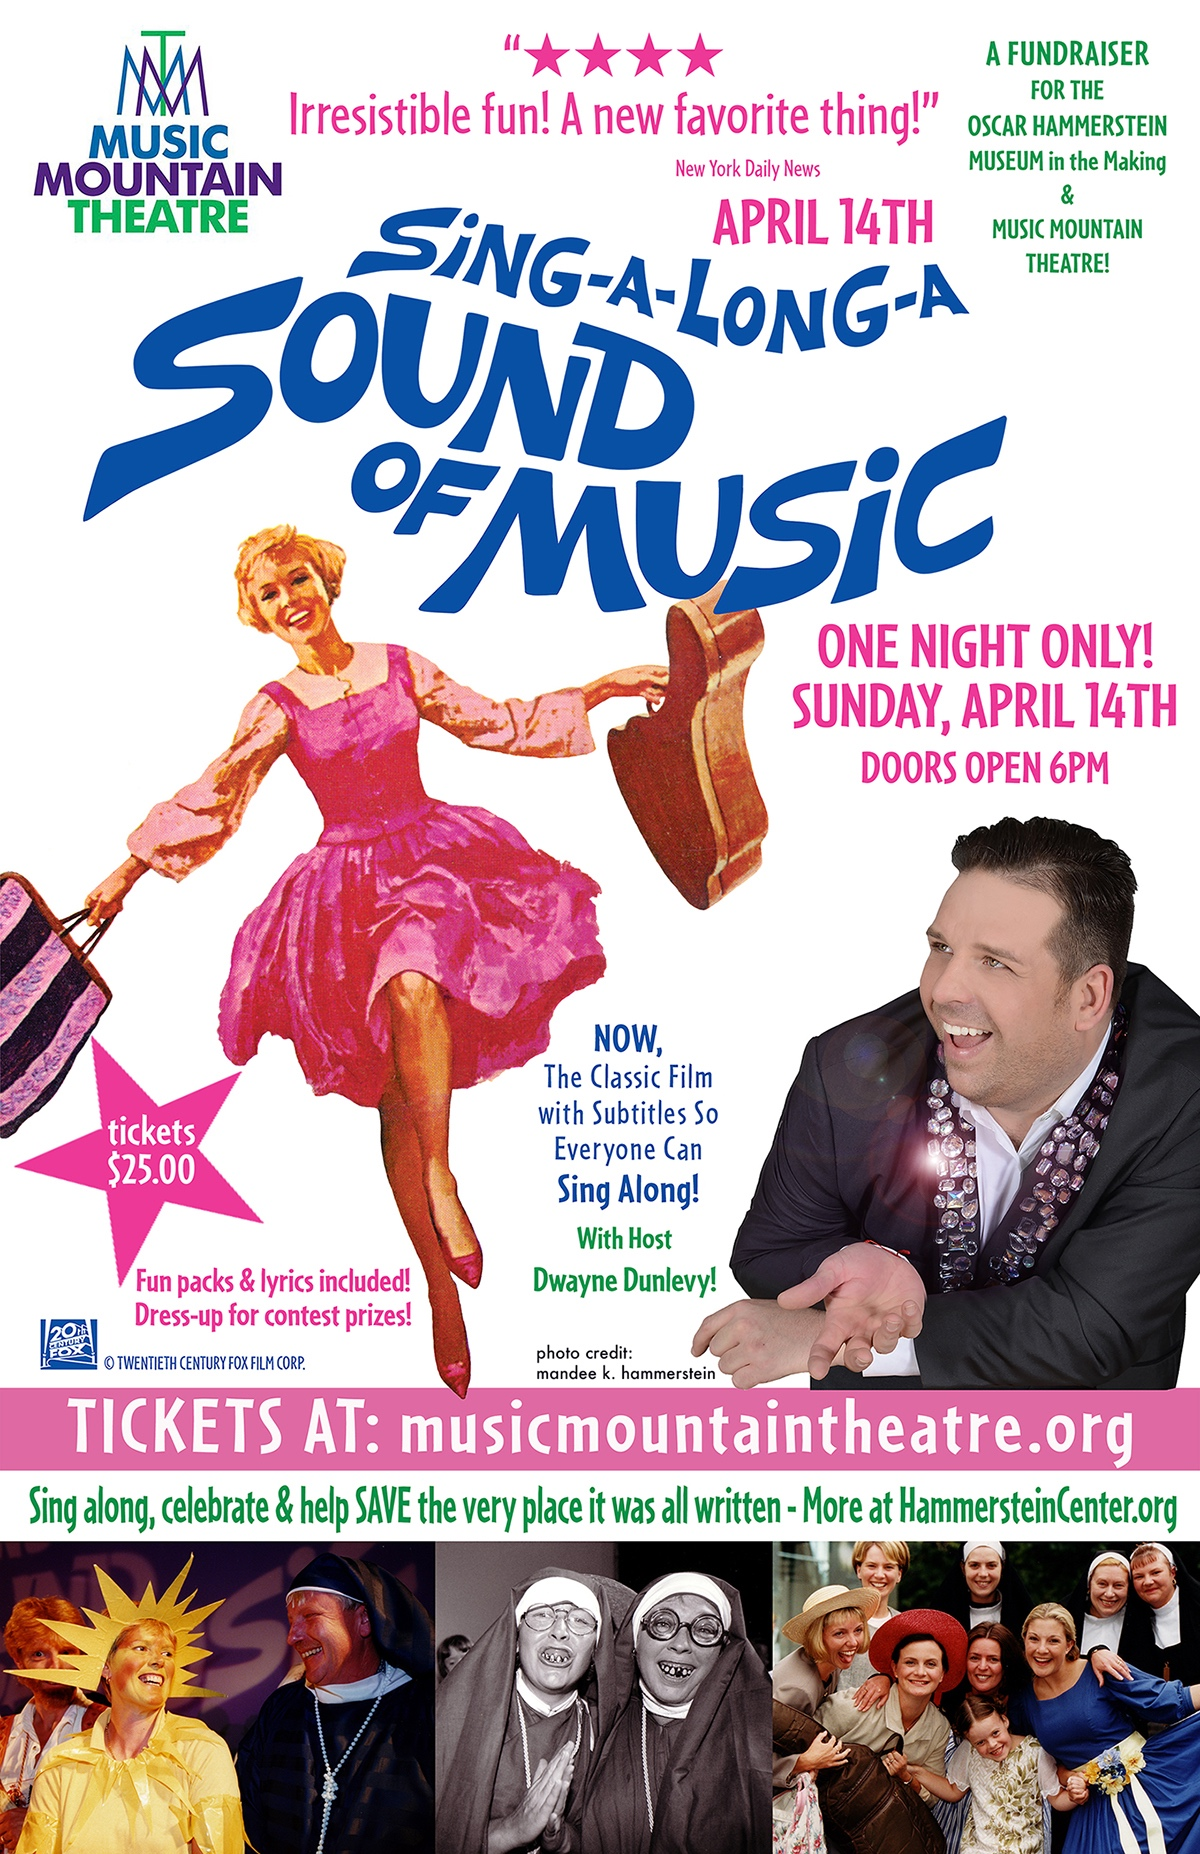 PosterDesign_SoundOfMusic_DigitalShare.jpg